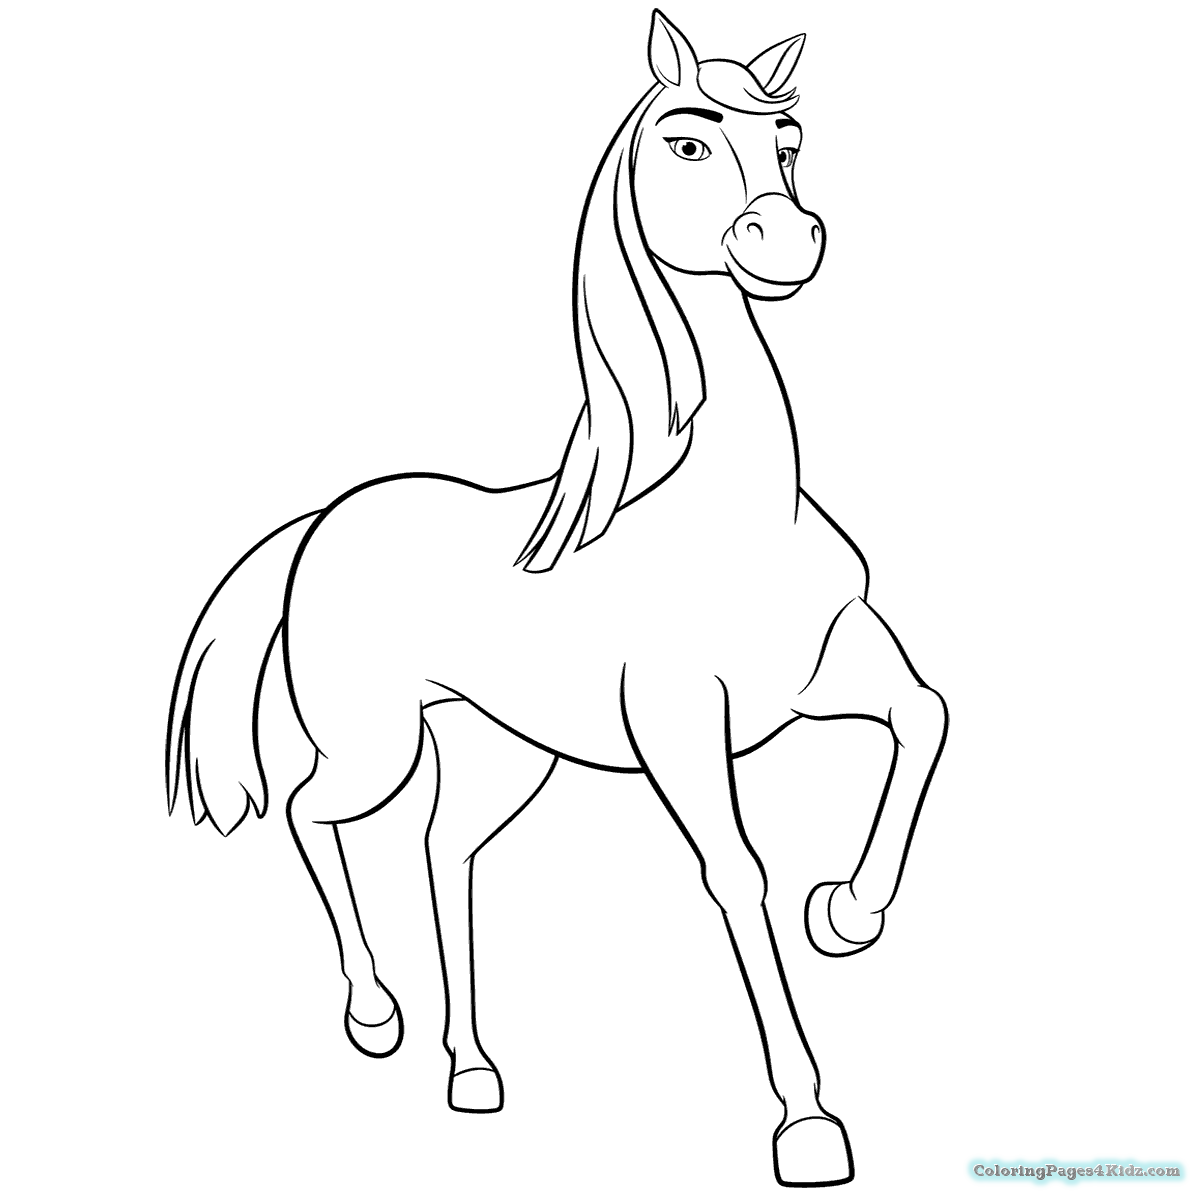 dreamworks spirit coloring pages dreamworks spirit coloring pages coloring coloring pages pages dreamworks coloring spirit